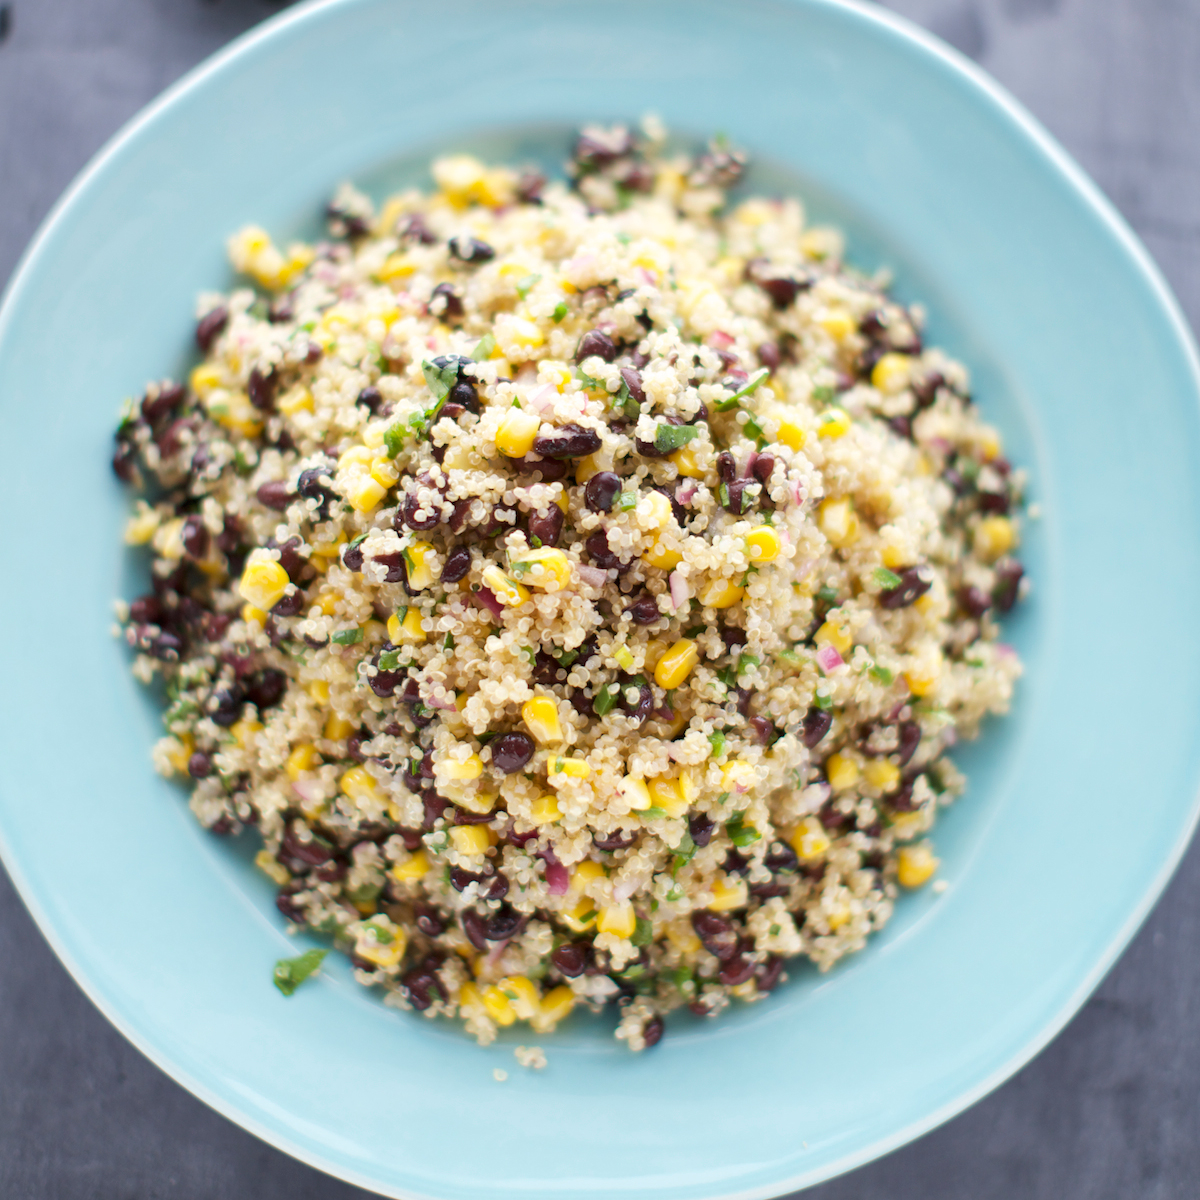 Quinoa corn and black bean salad recipe kate winslow food wine forumfinder Image collections